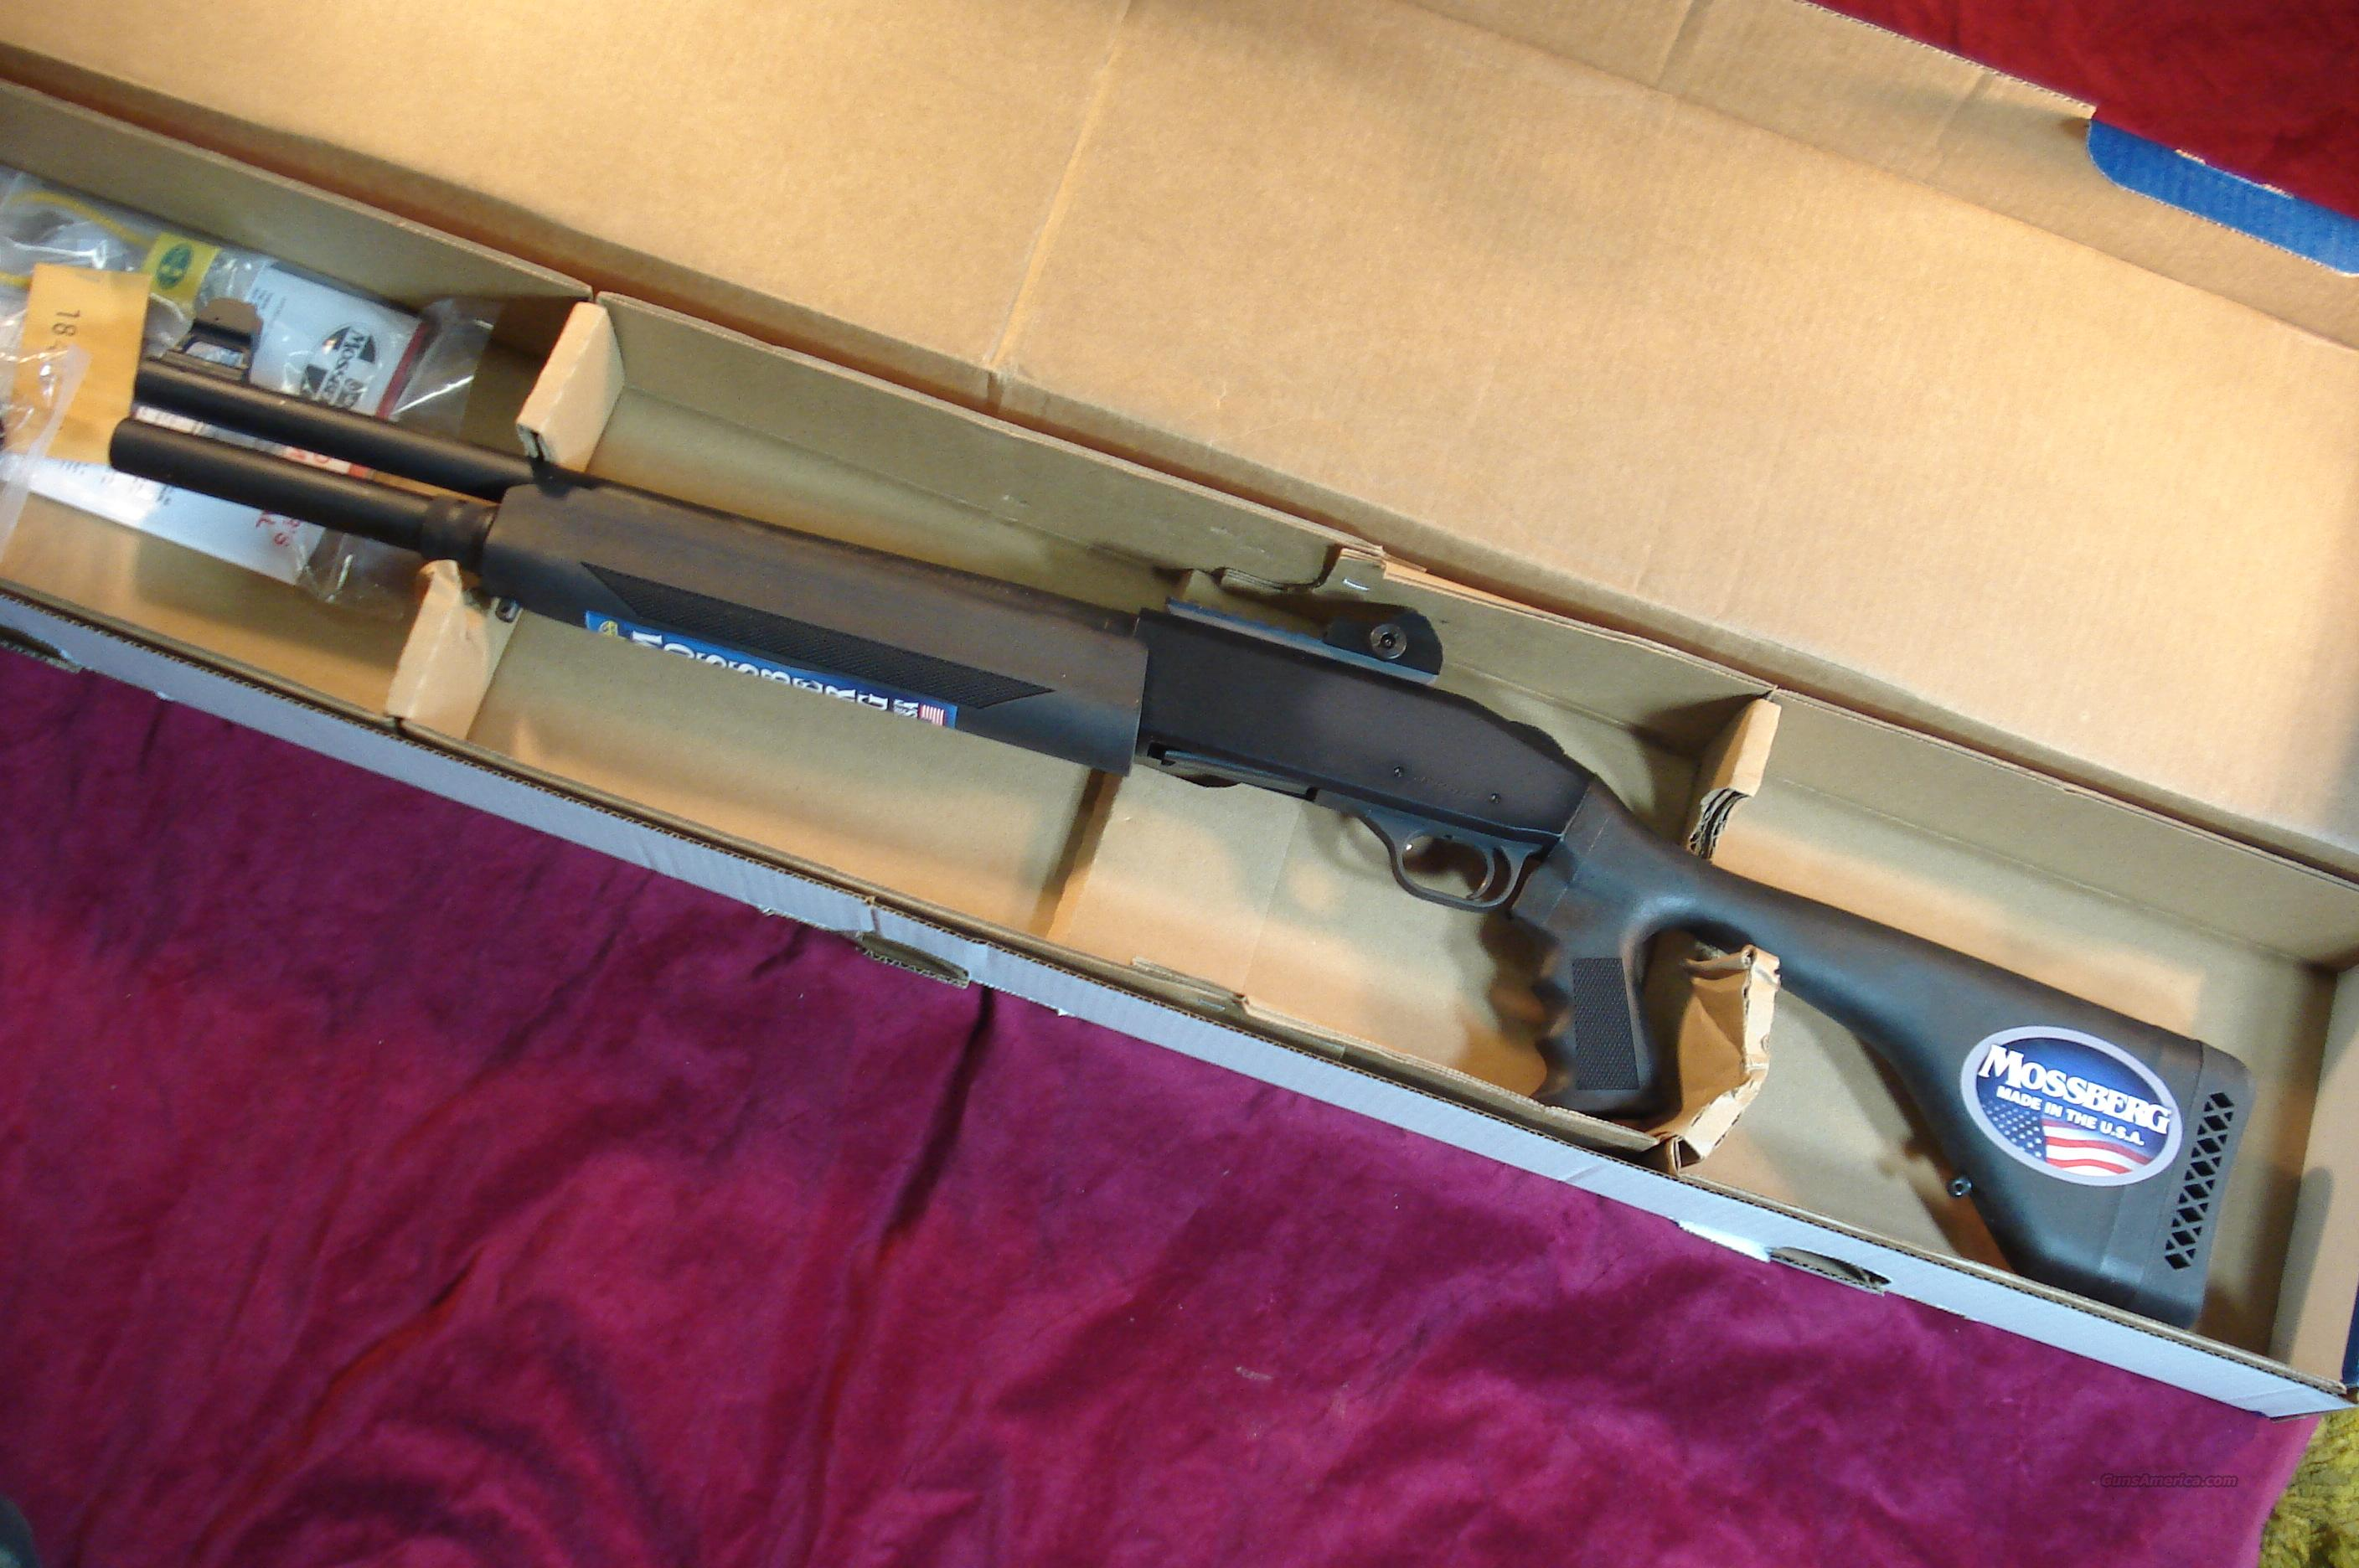 MOSSBERG 930SPX 12G WITH GHOST RING SIGHTS NEW  Guns > Shotguns > Mossberg Shotguns > Autoloaders